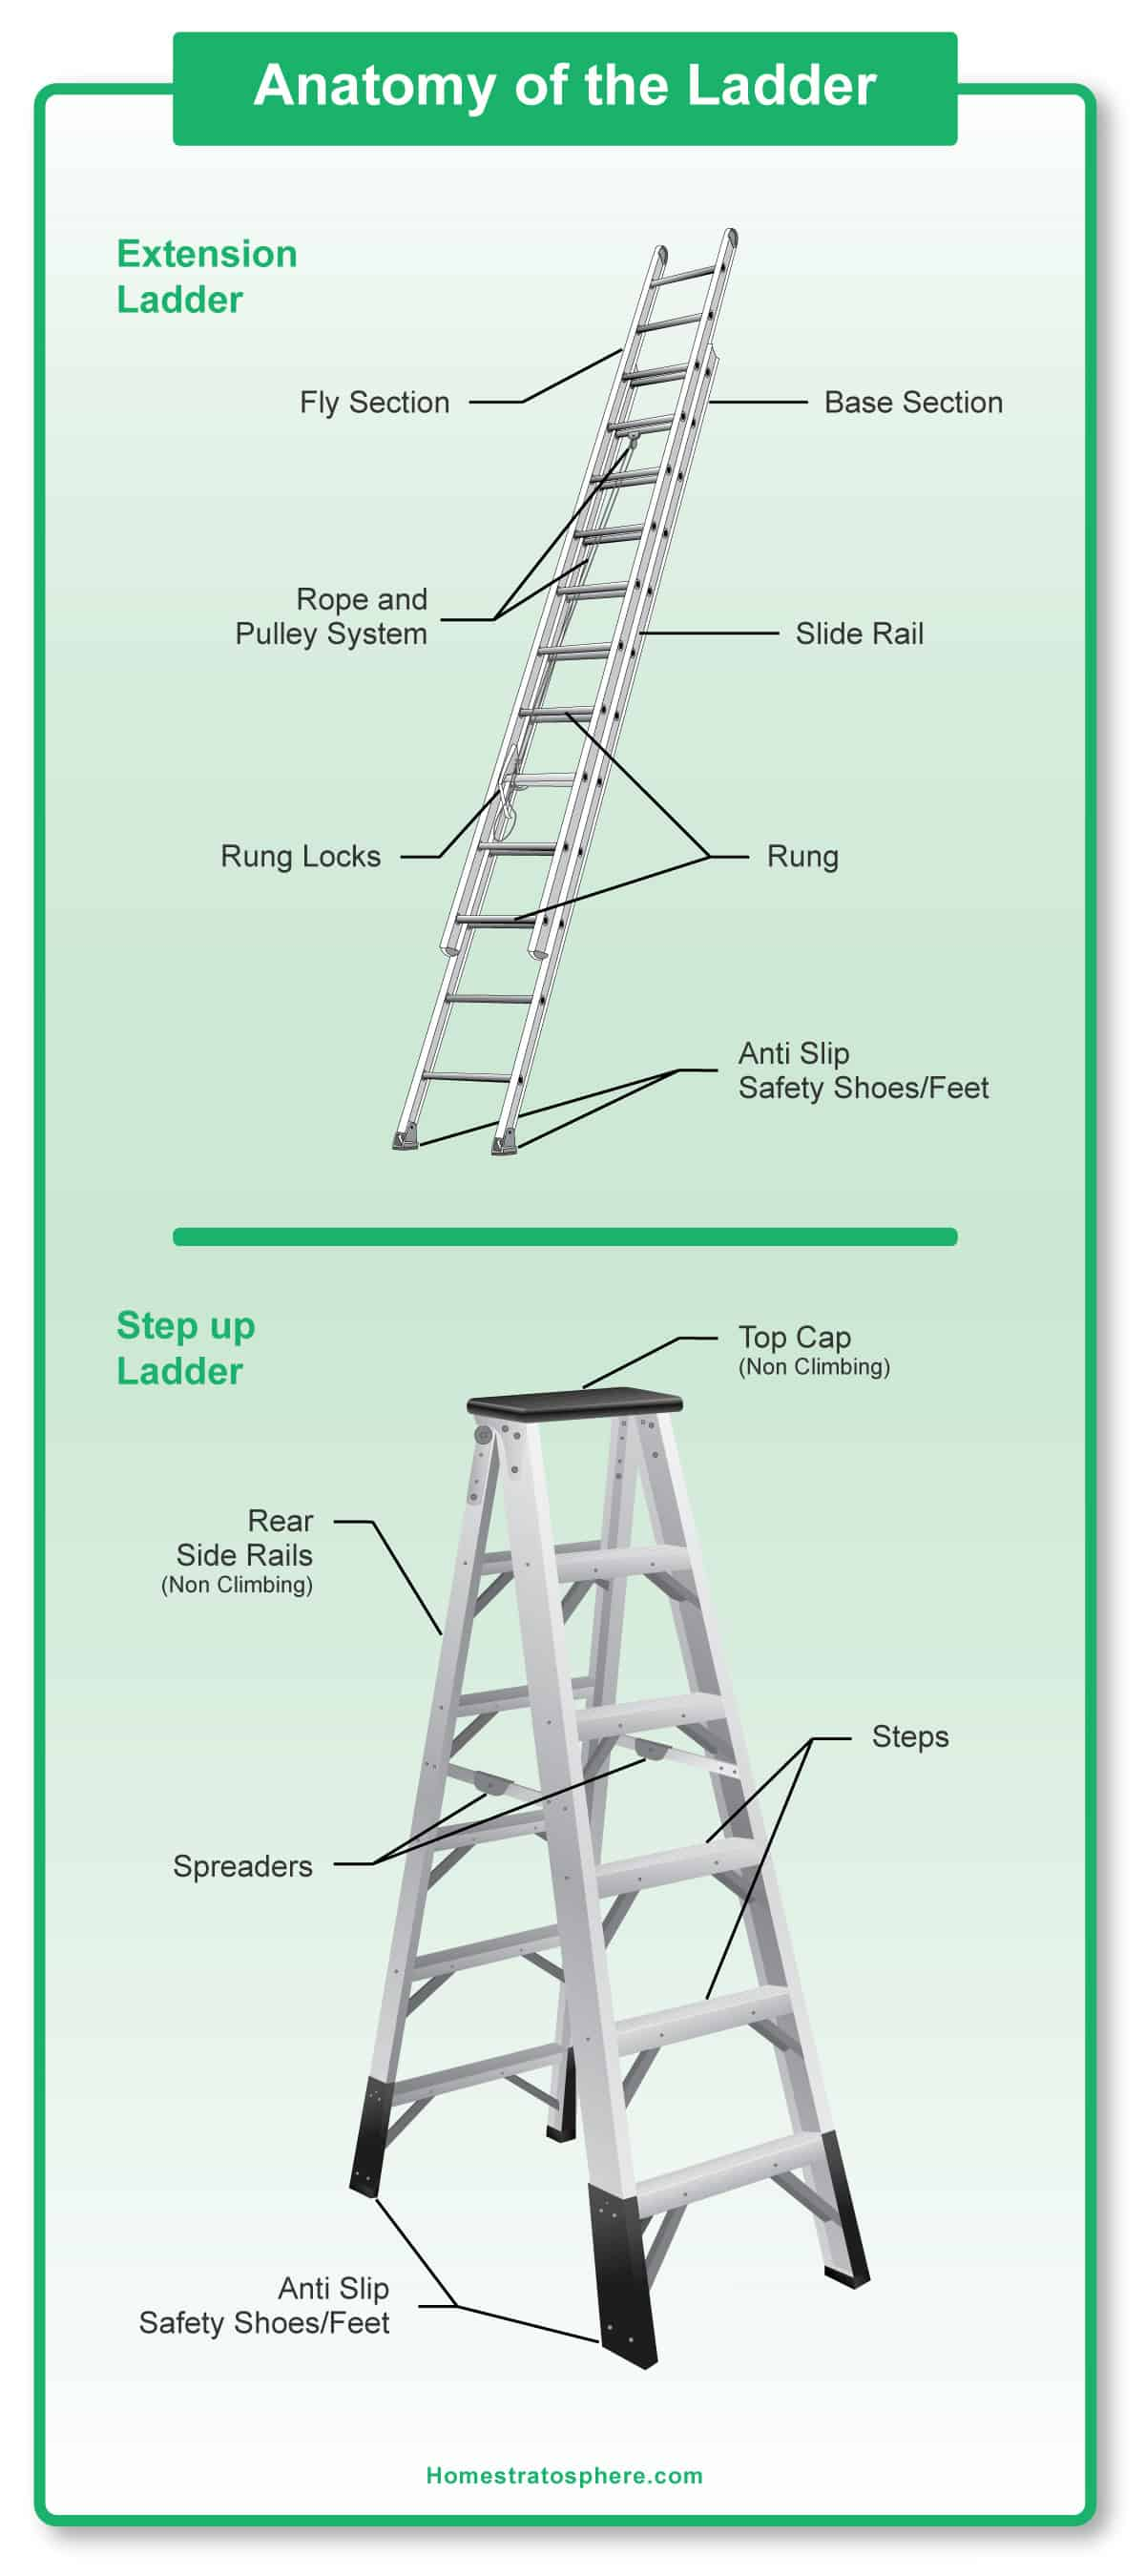 39 Ingenious Diagrams for Your Home and Garden Projects